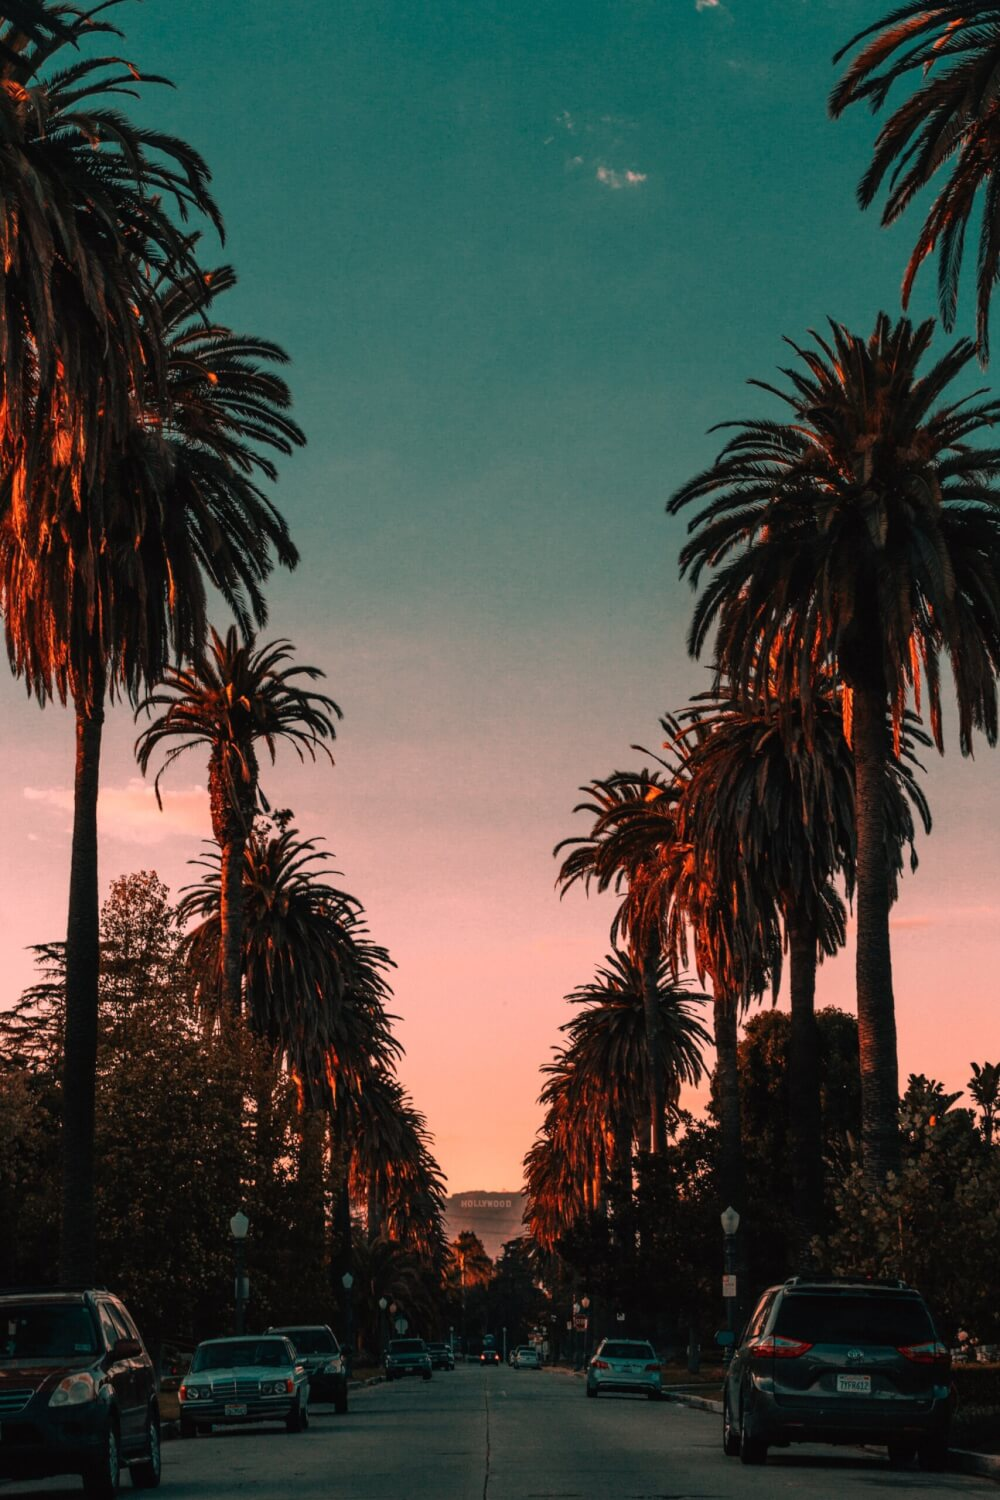 A lurid dusk sky over a street lined by palm trees with the hollywood sign positioned on a hillside in the distance.